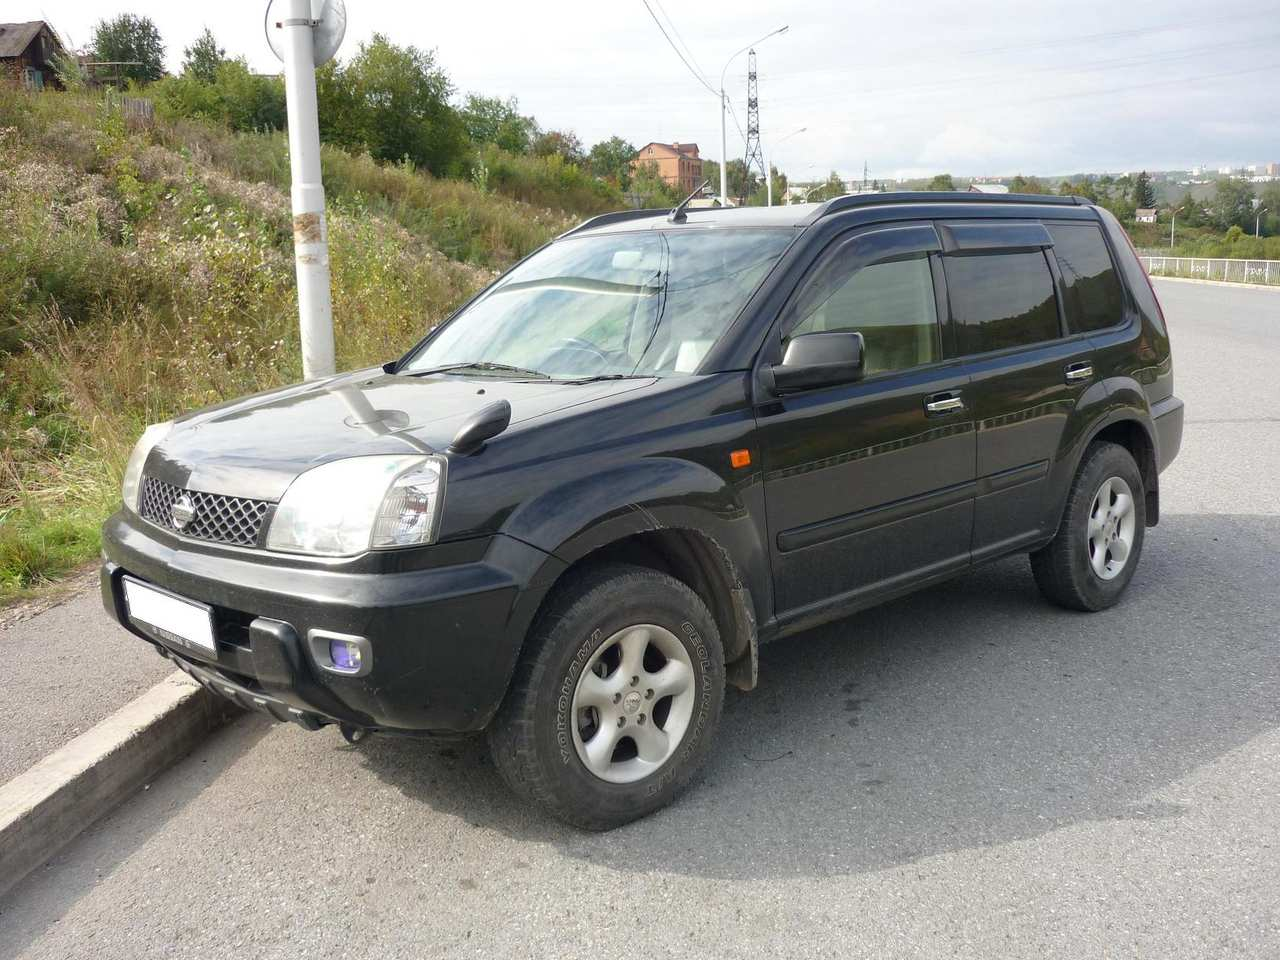 used 2003 nissan x trail photos 2000cc gasoline automatic for sale. Black Bedroom Furniture Sets. Home Design Ideas